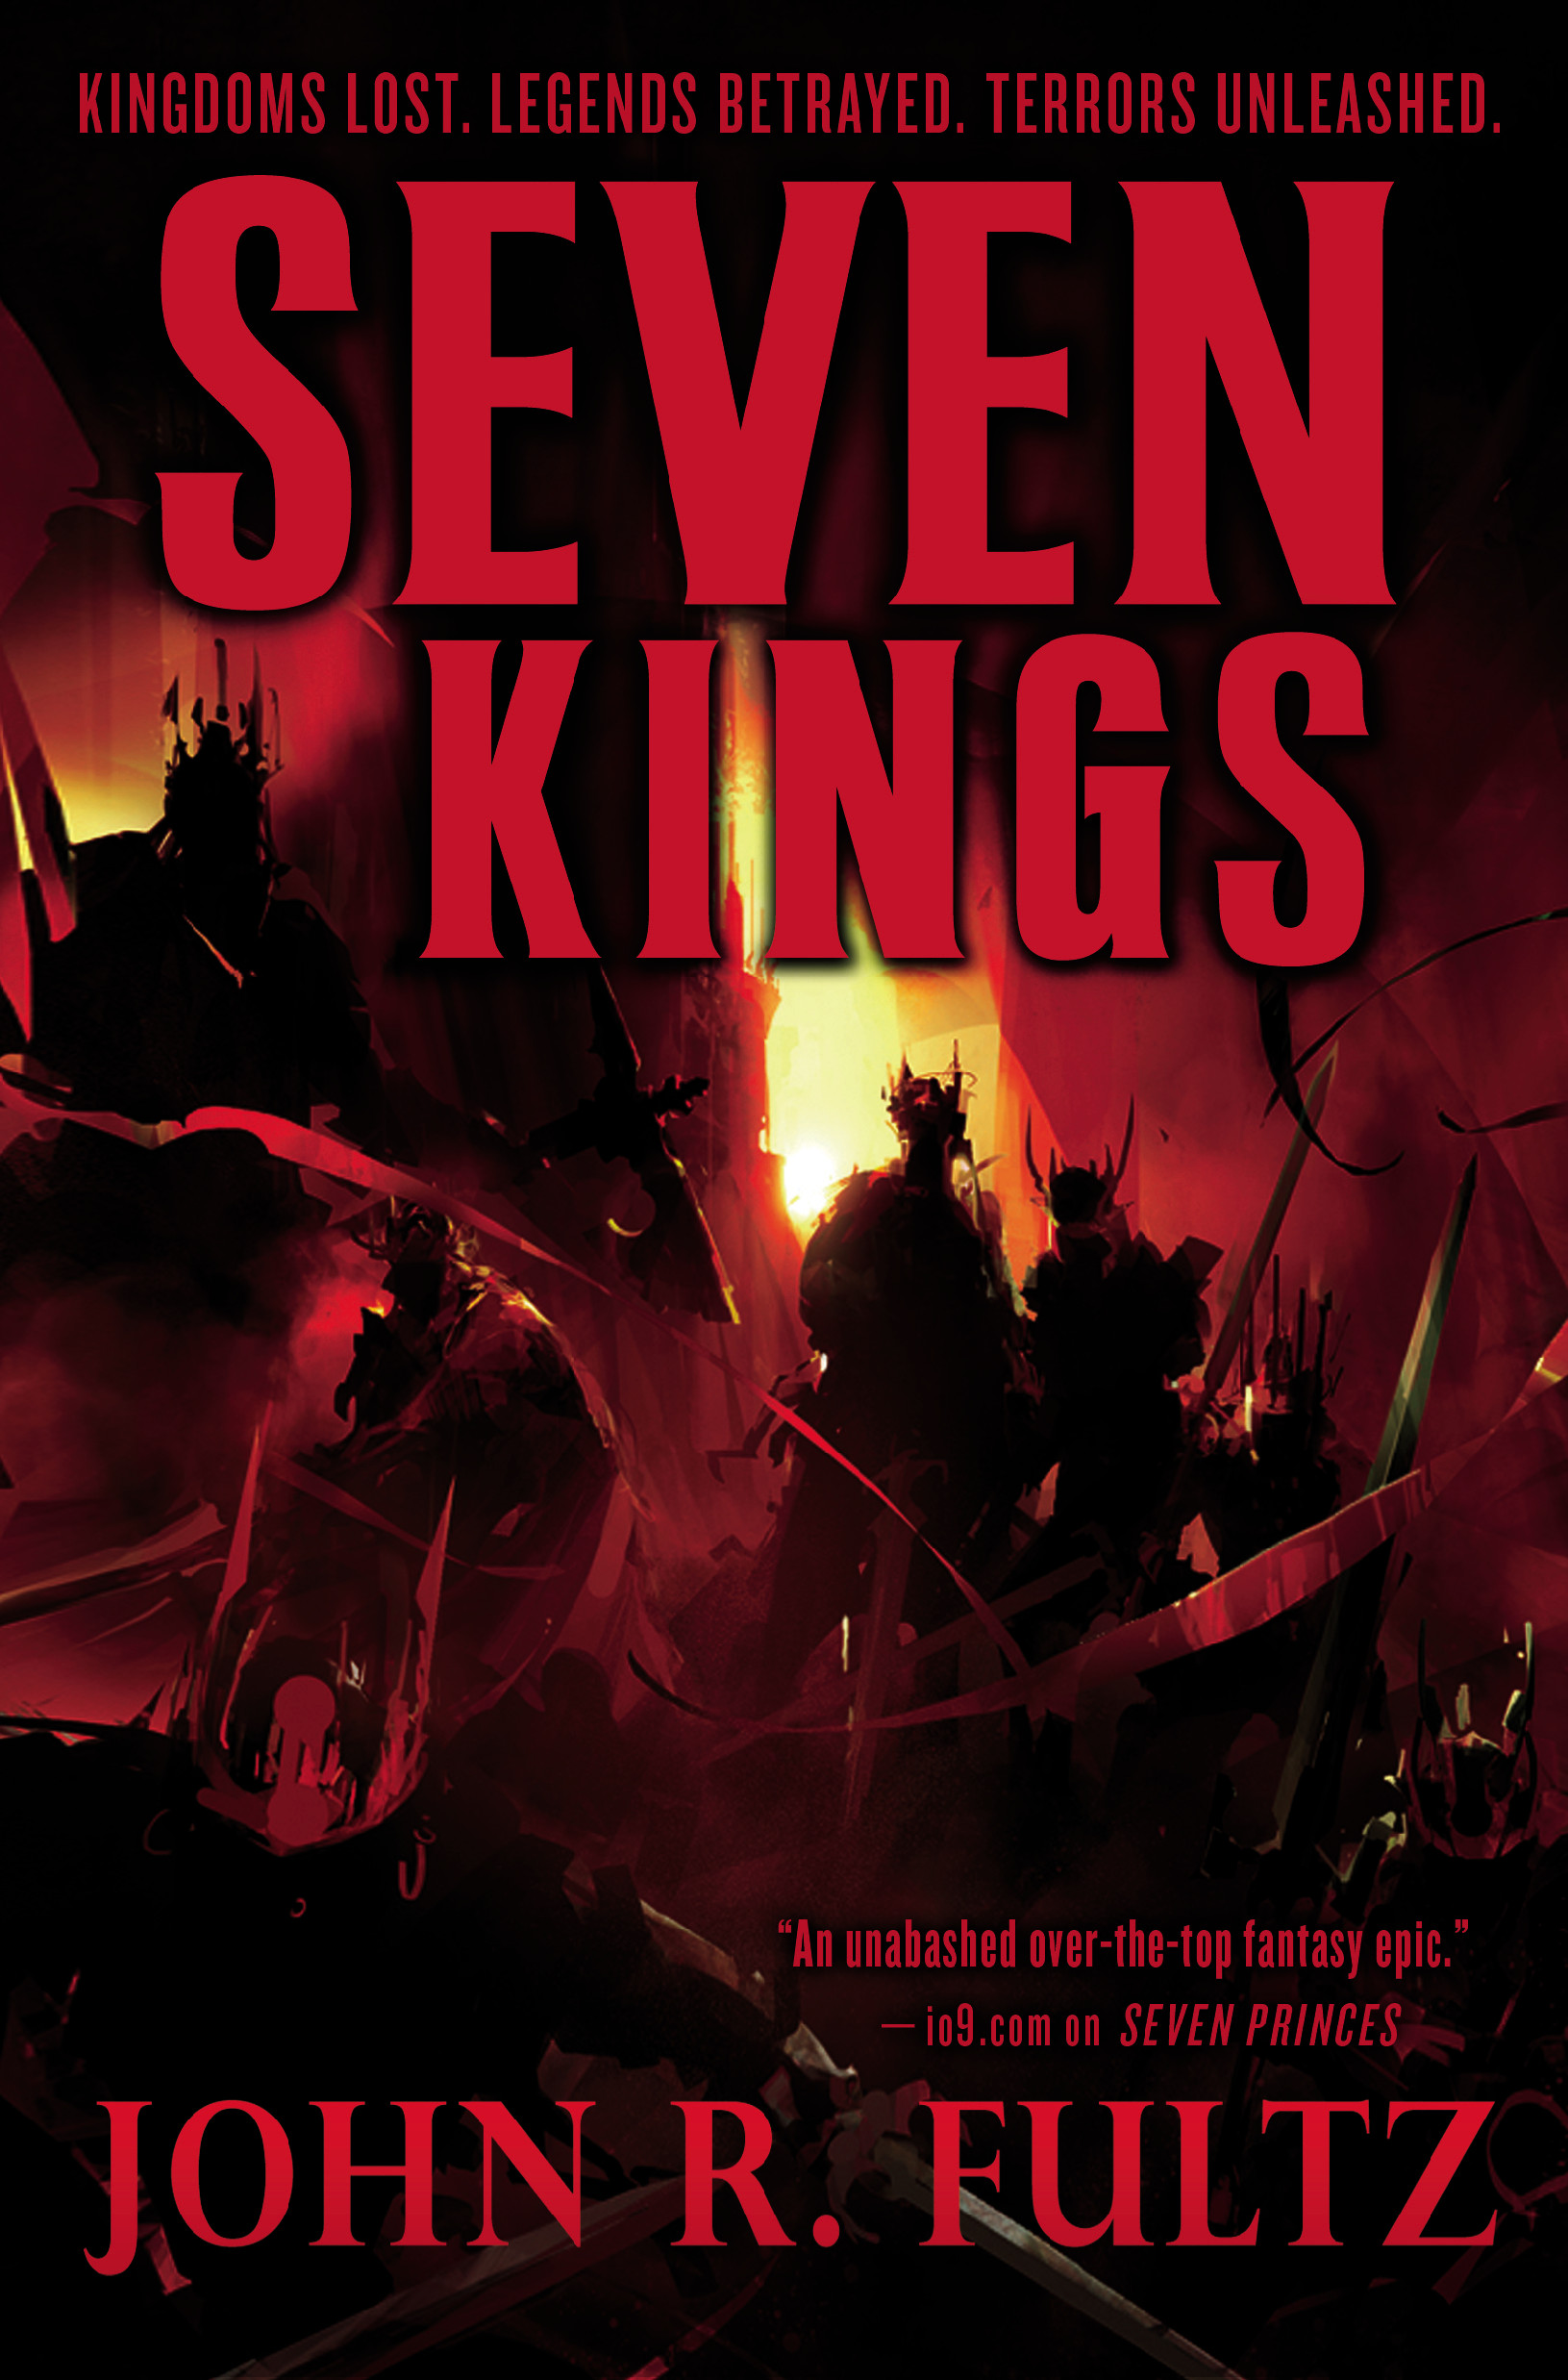 SEVEN KINGS by John R. Fultz